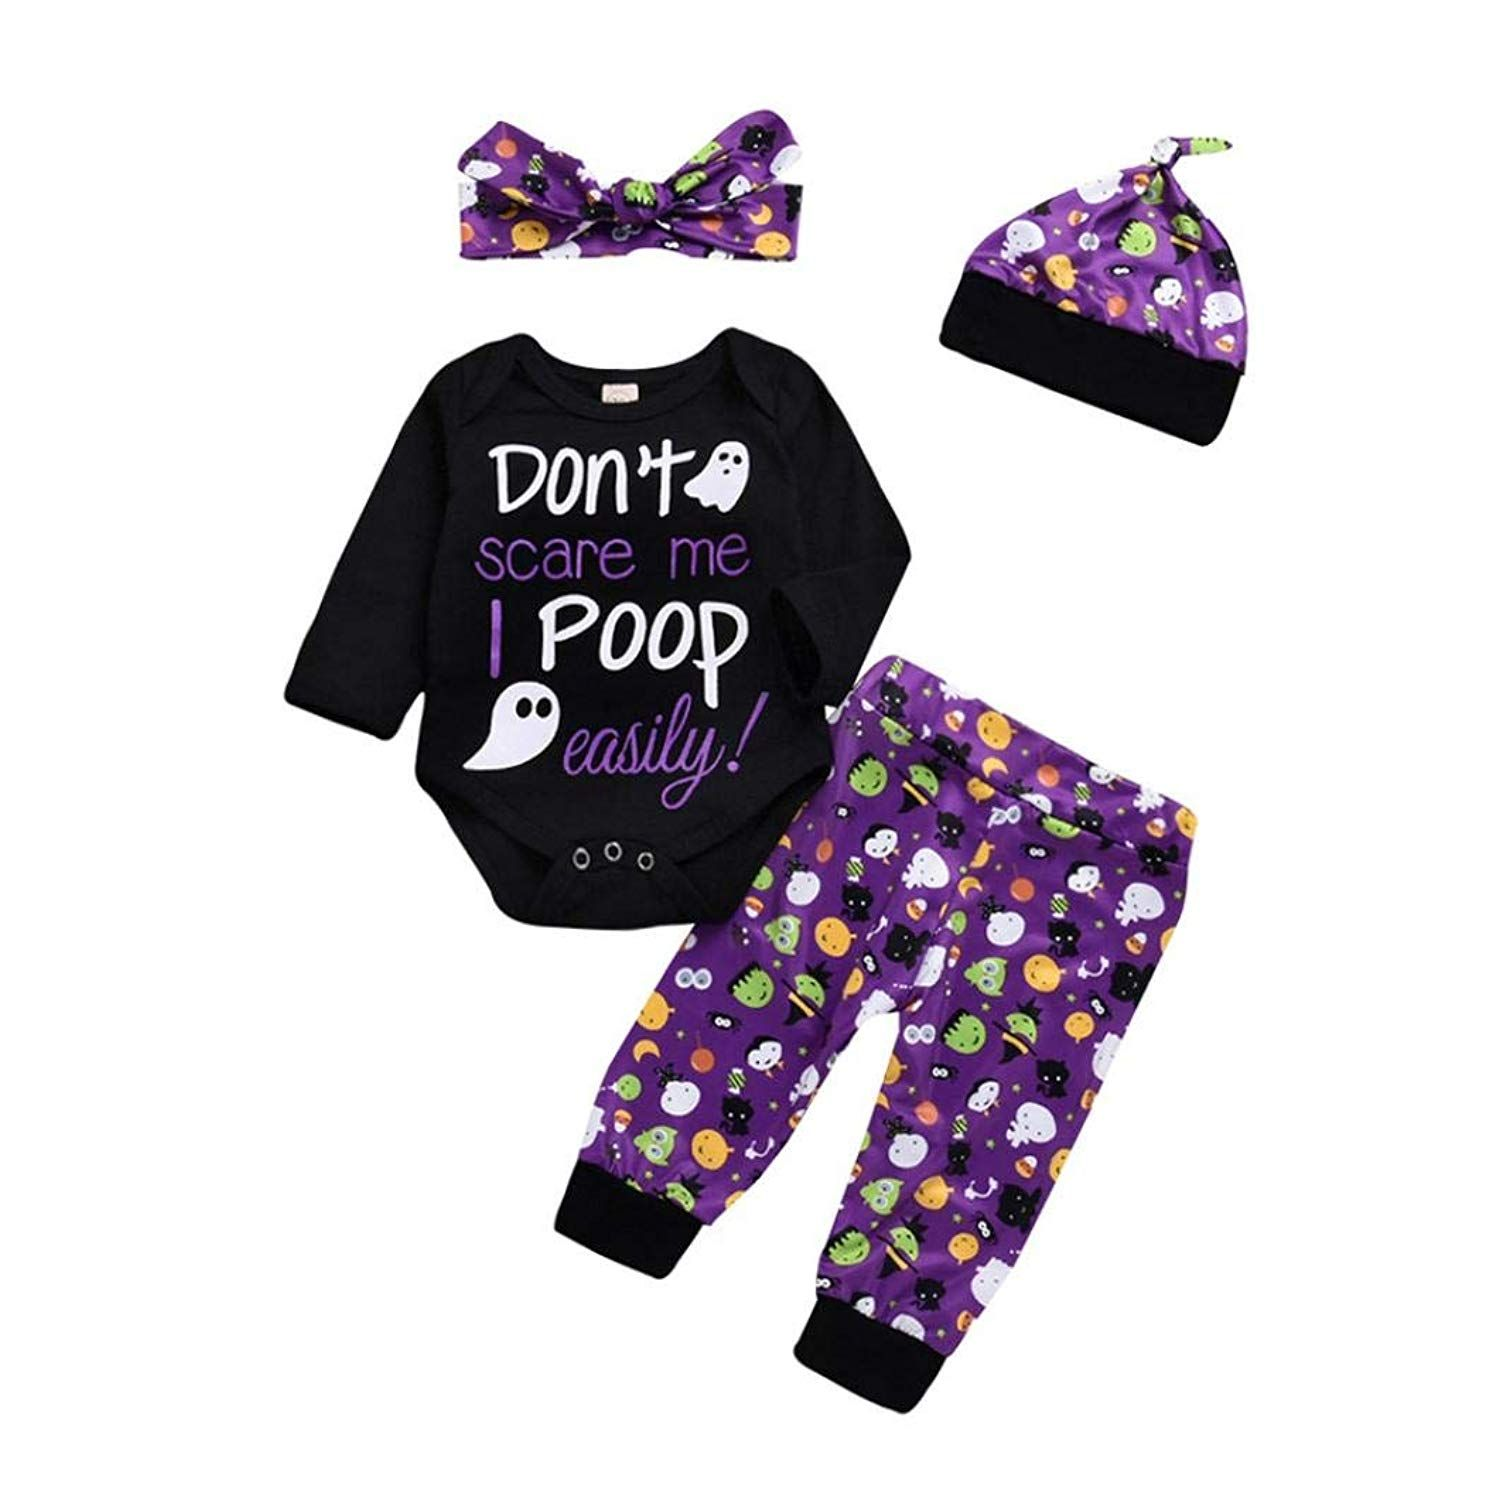 76ba7f1a8b975 Halloween Face Make-up - Clearance Sale! VEKDONE Toddler Infant Baby Girls  Boys Letter Romper Pants Halloween Costume Outfits Set  #scaryhalloweenmakeupideas